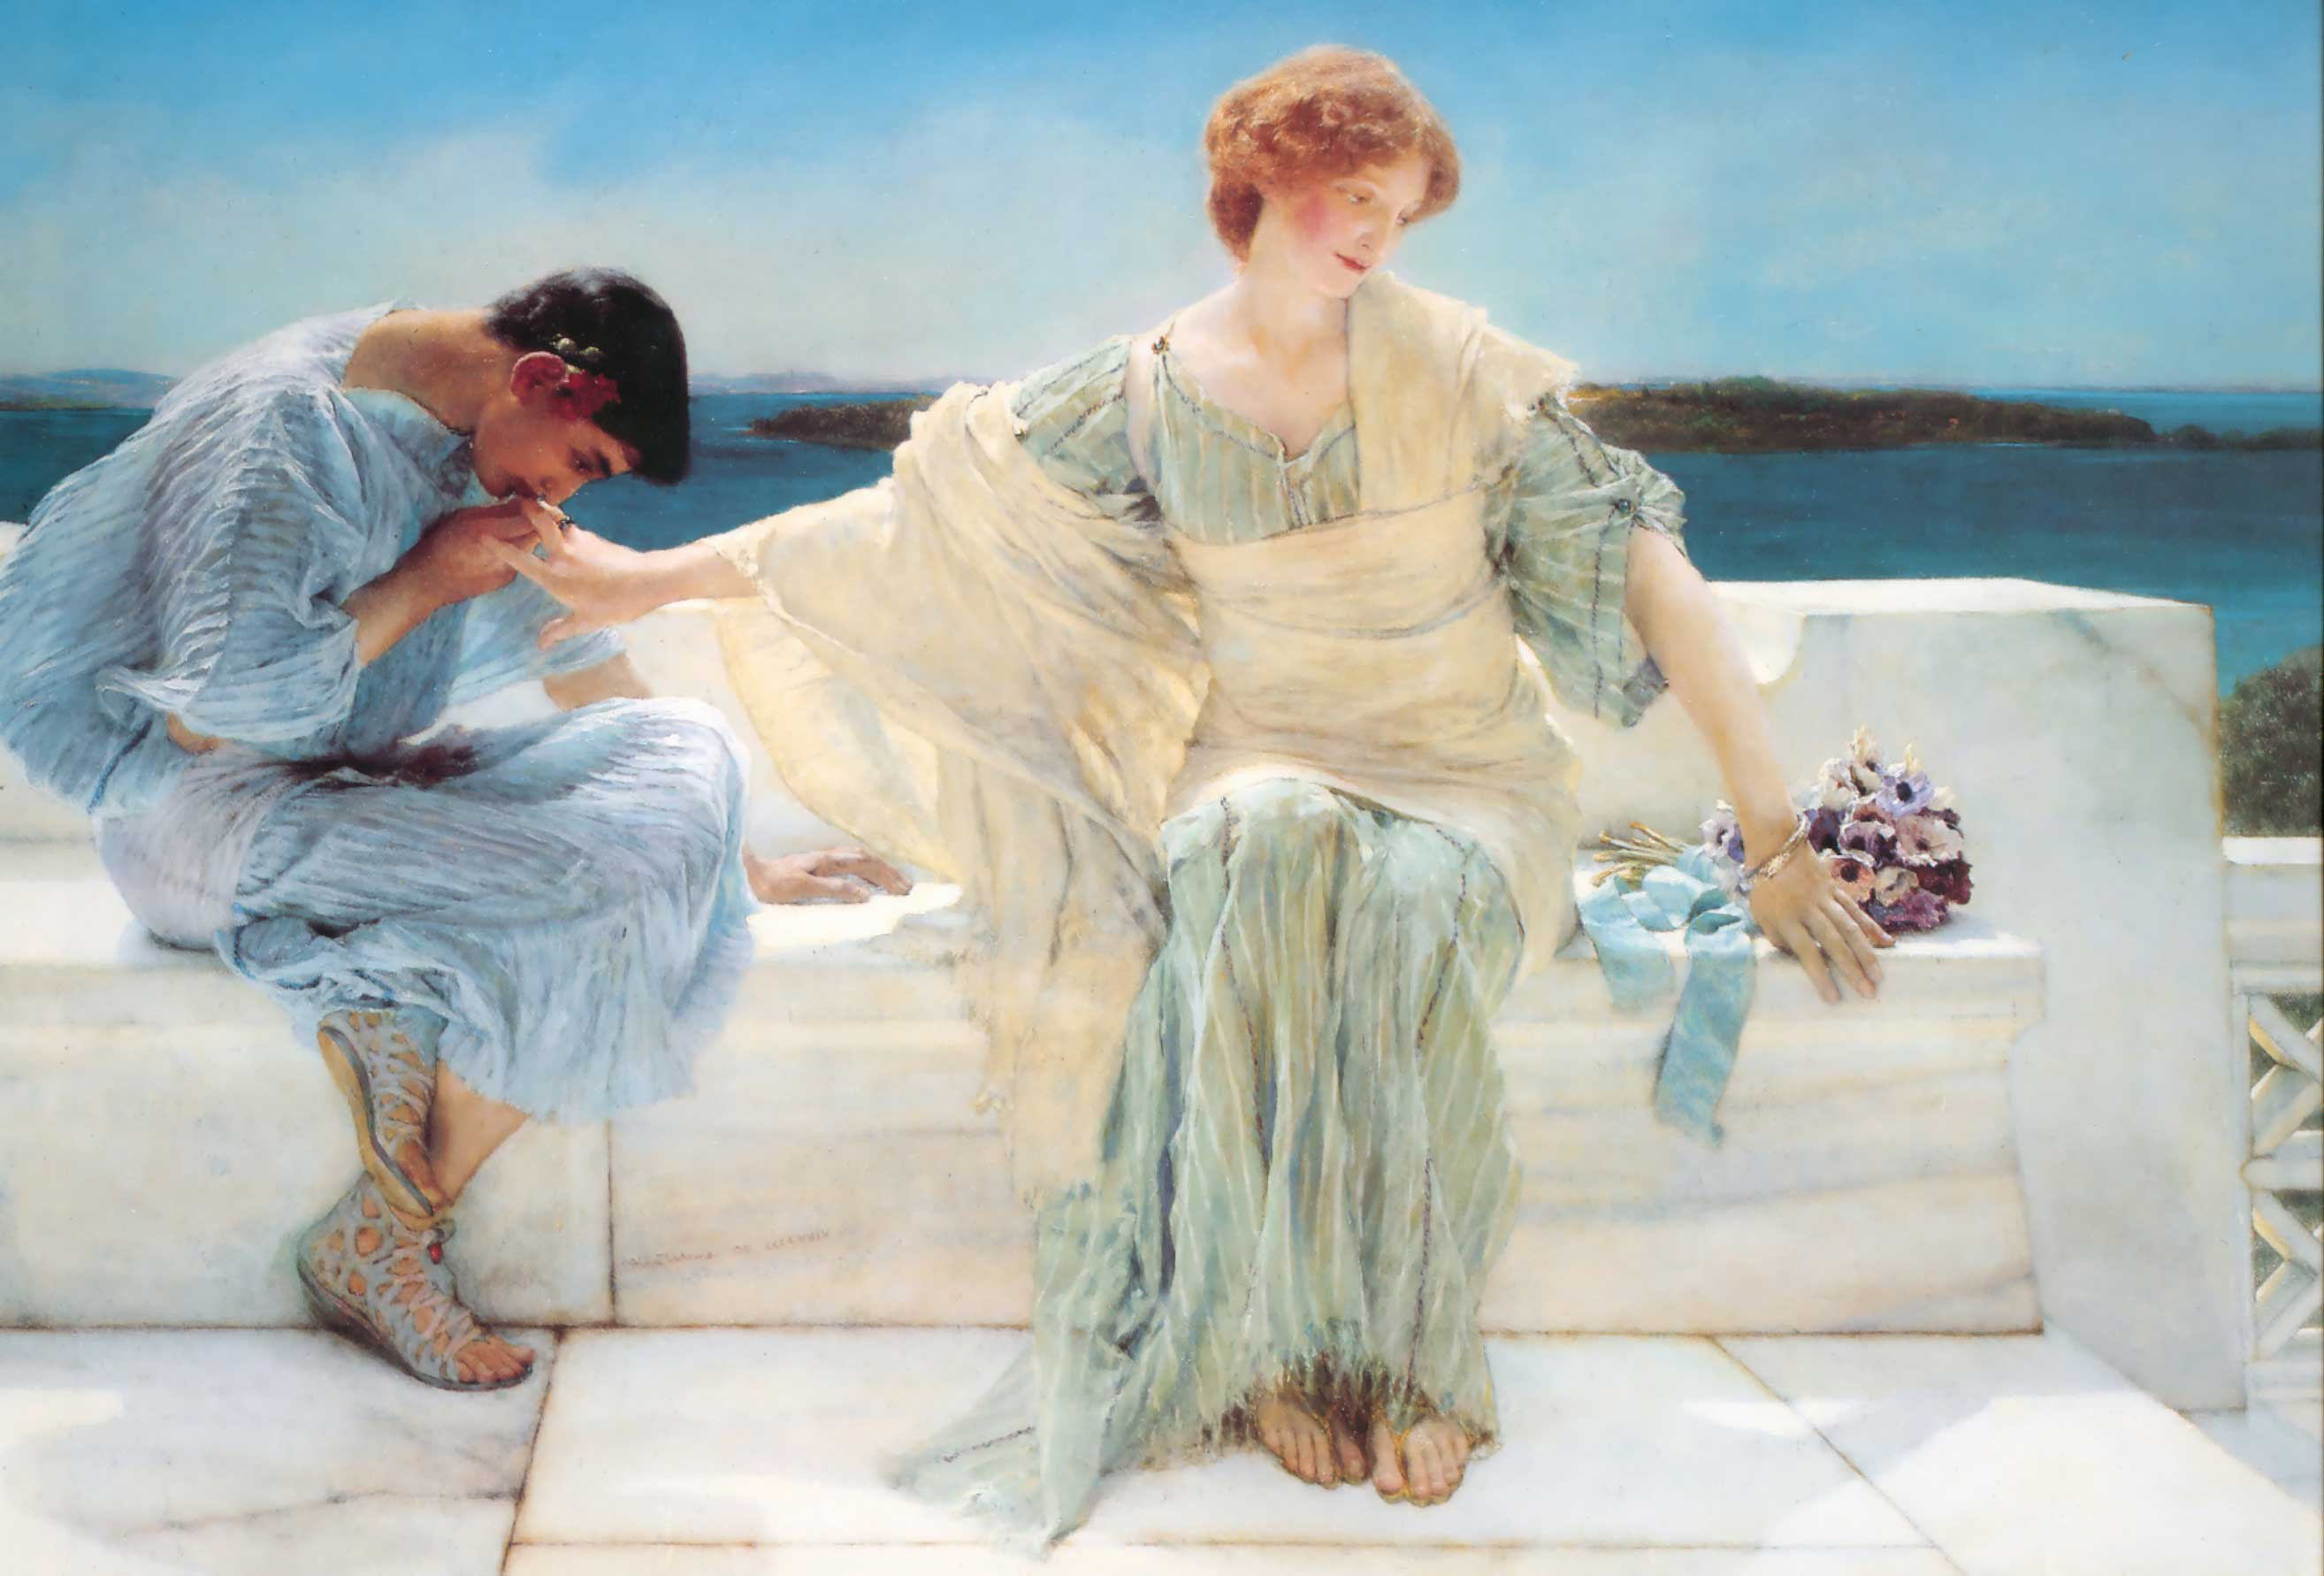 http://uploads1.wikipaintings.org/images/alma-tadema-lawrence/ask-me-no-more-1906.jpg